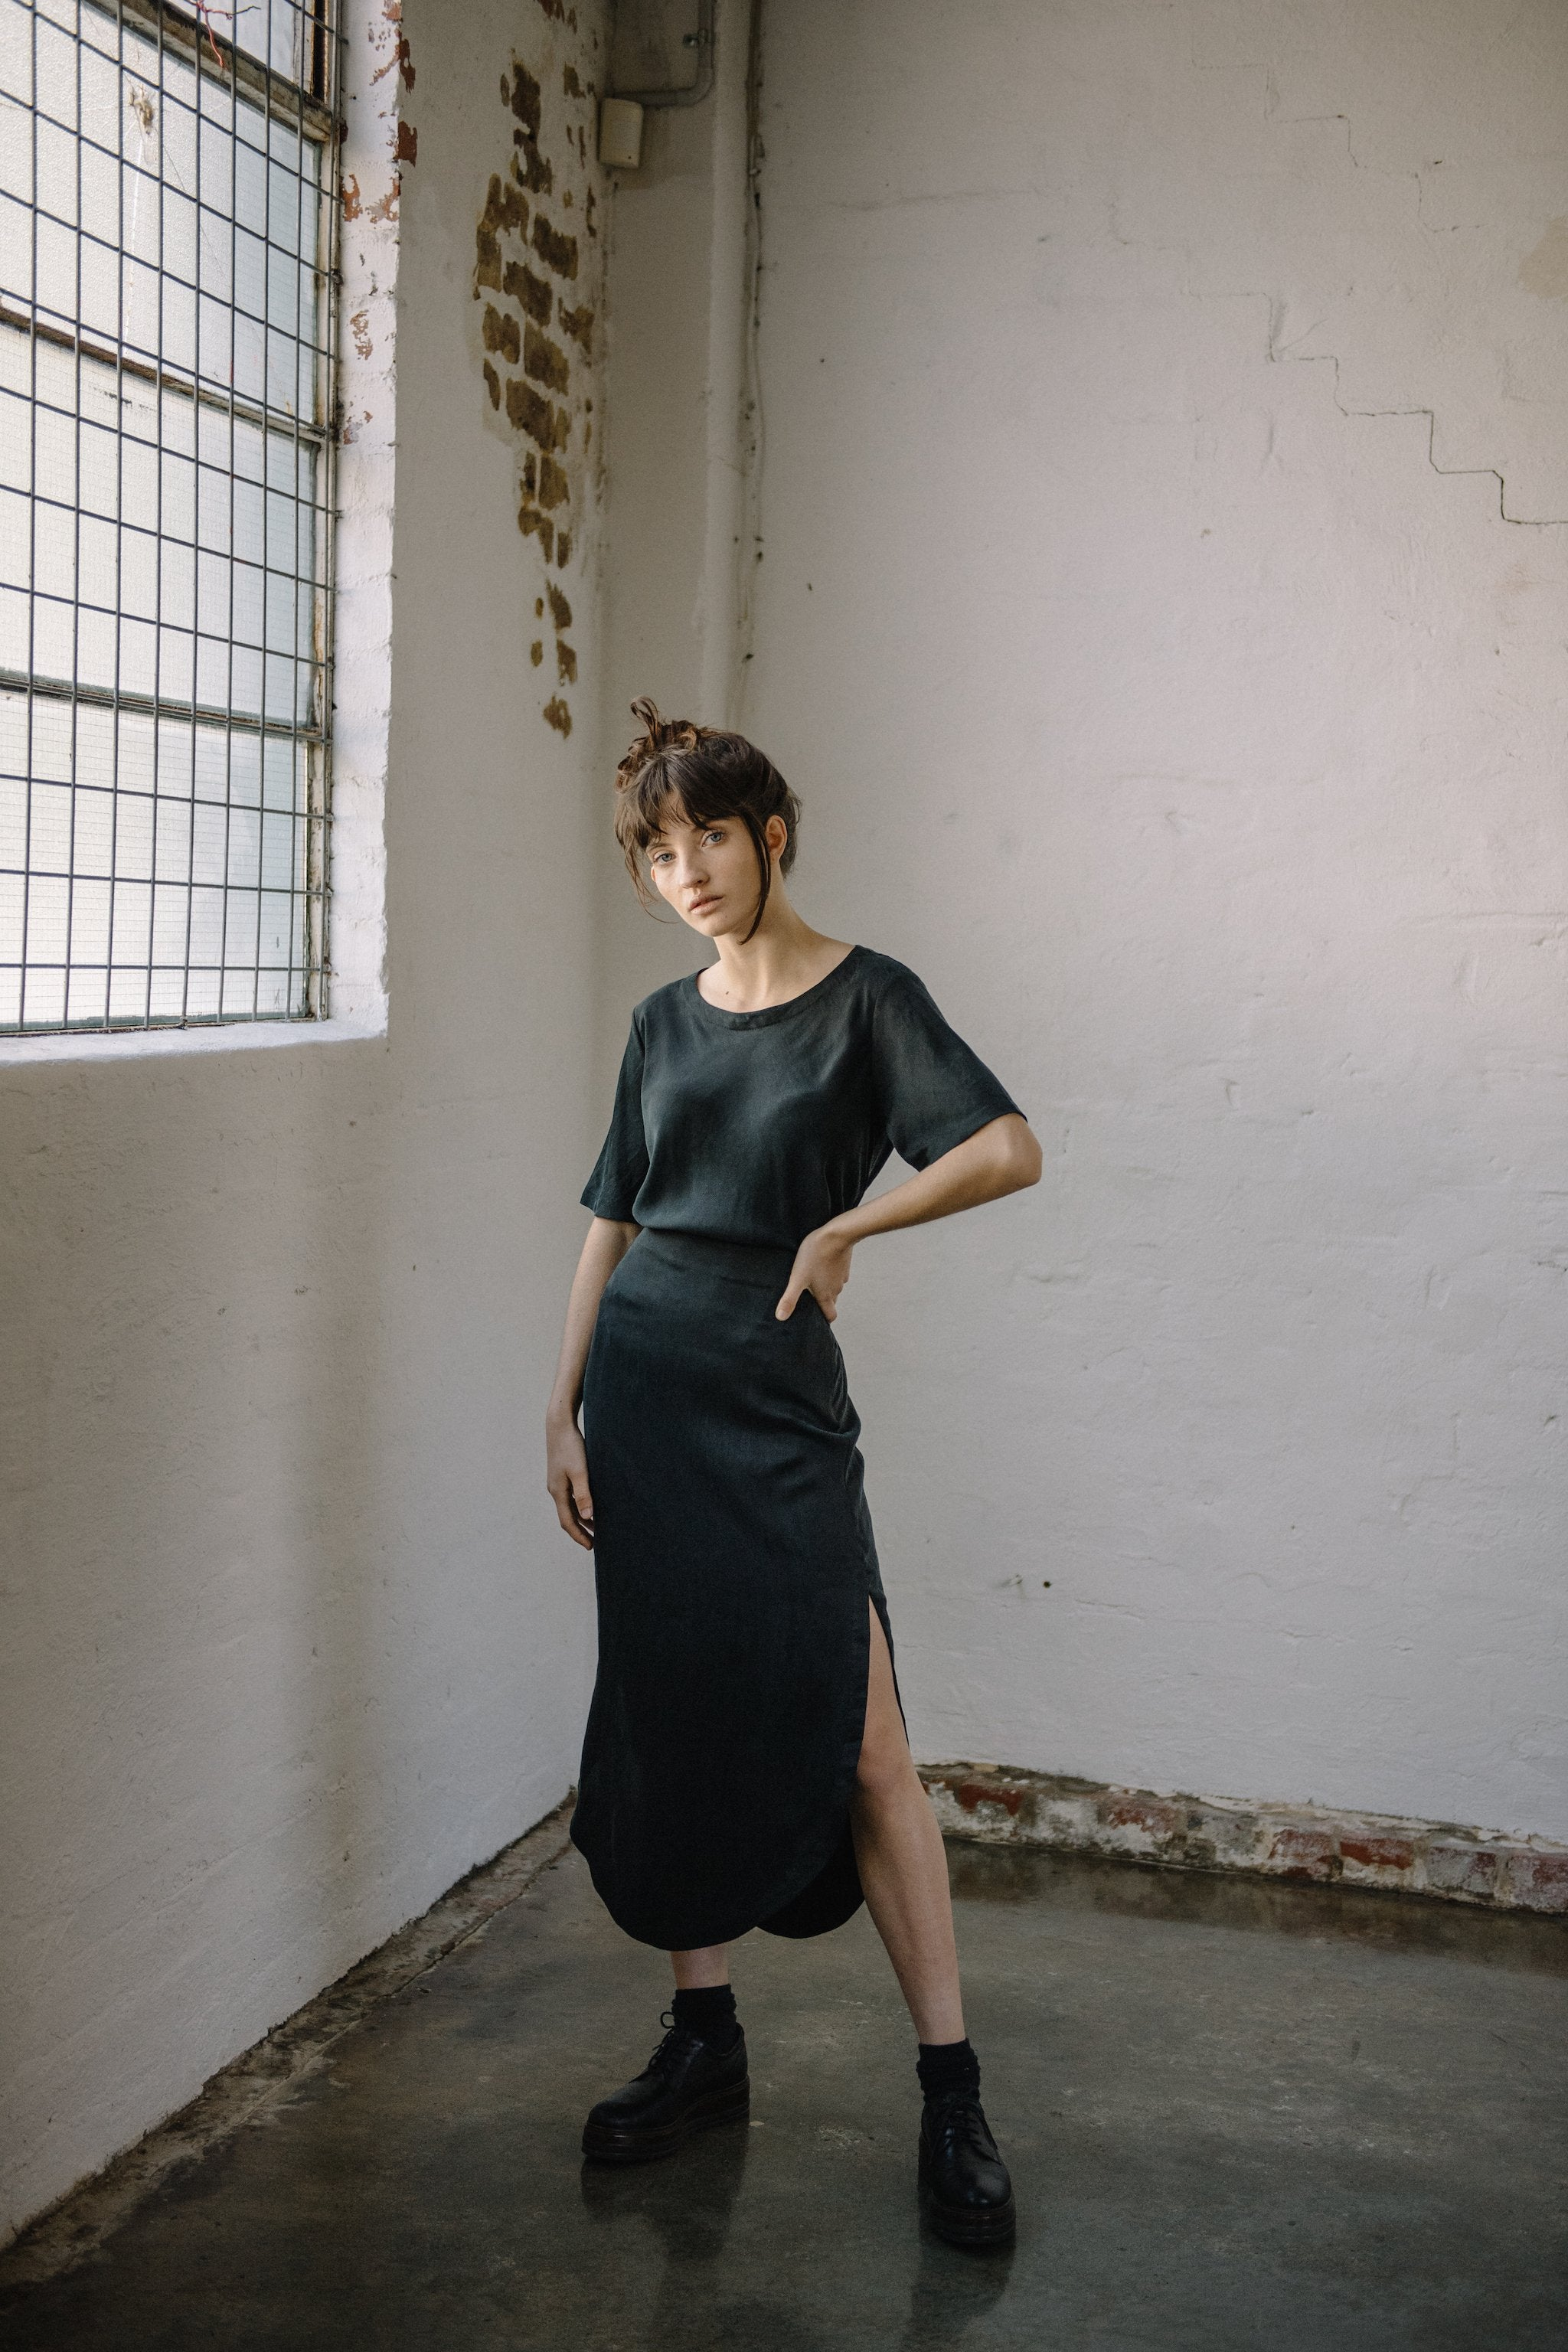 Humble Skirt Skirts The Fashion Advocate ethical Australian fashion designer boutique Melbourne sustainable clothes